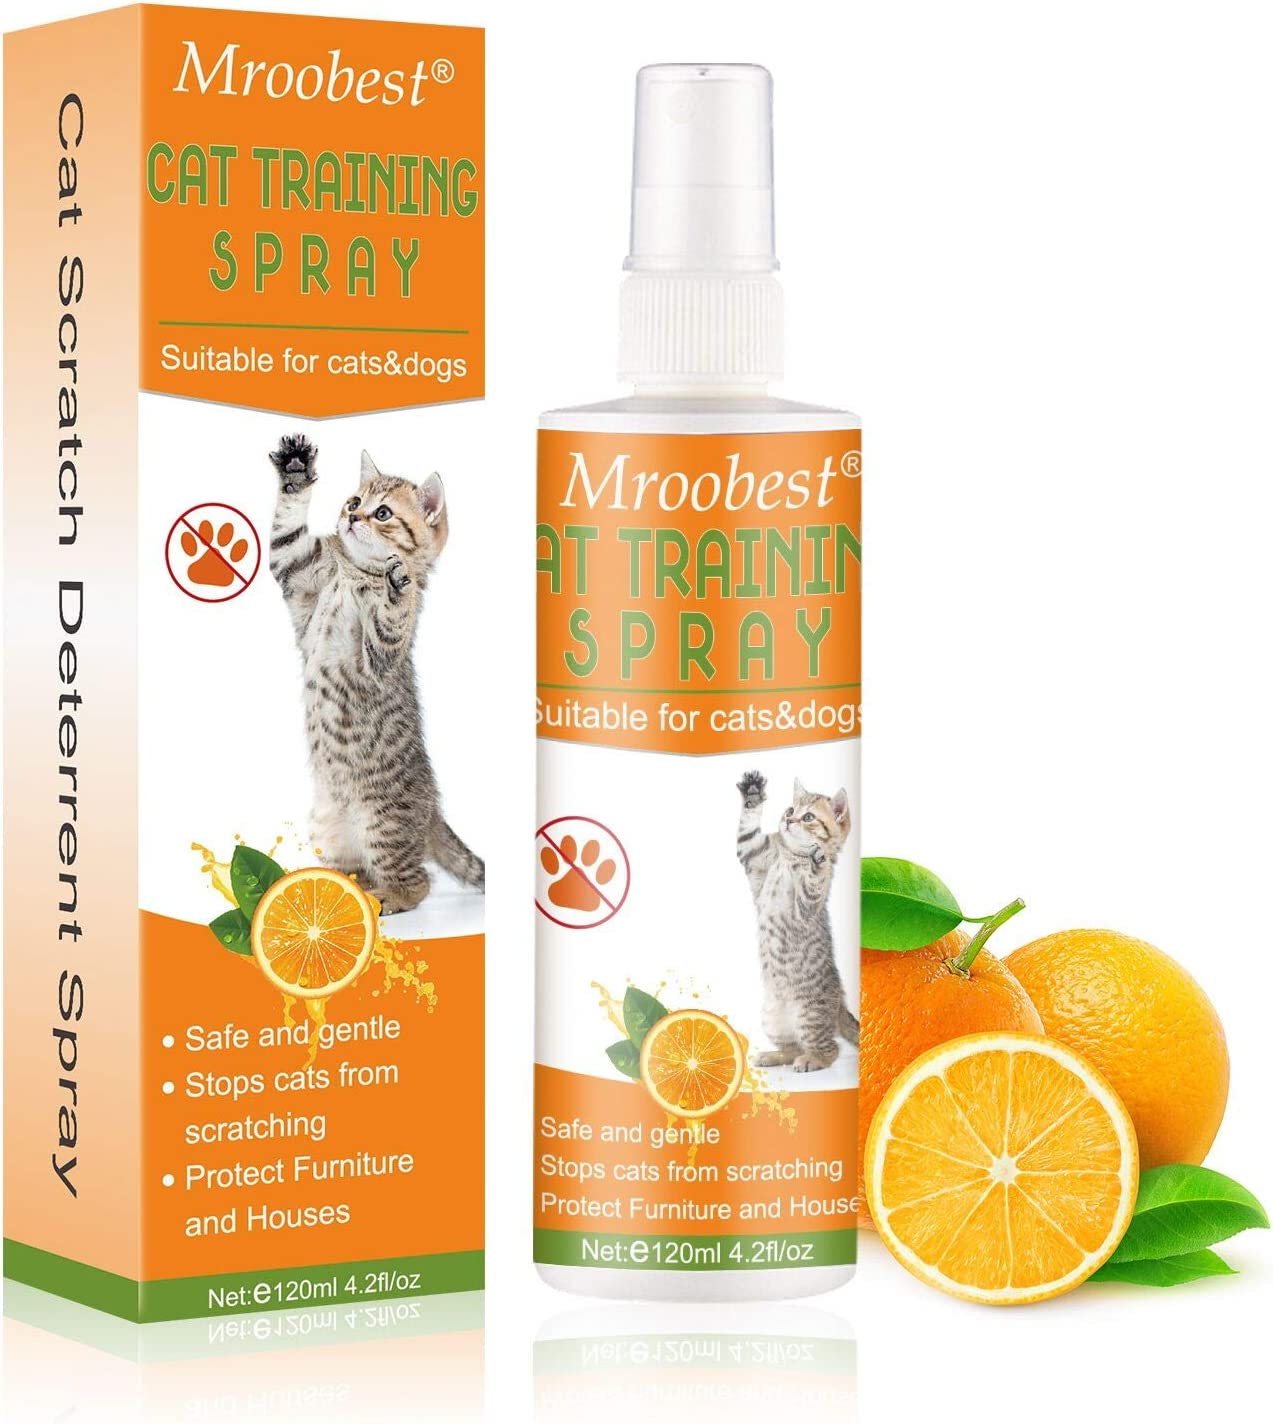 Mroobest Cat Scratch Deterrent Spray, Cat Trainin Spray, Stop Scratch Training Spray, Stress Prevent and Relax - Anti-Anxiety Spray for Pets, Suitable for Plants, Furniture, Floors